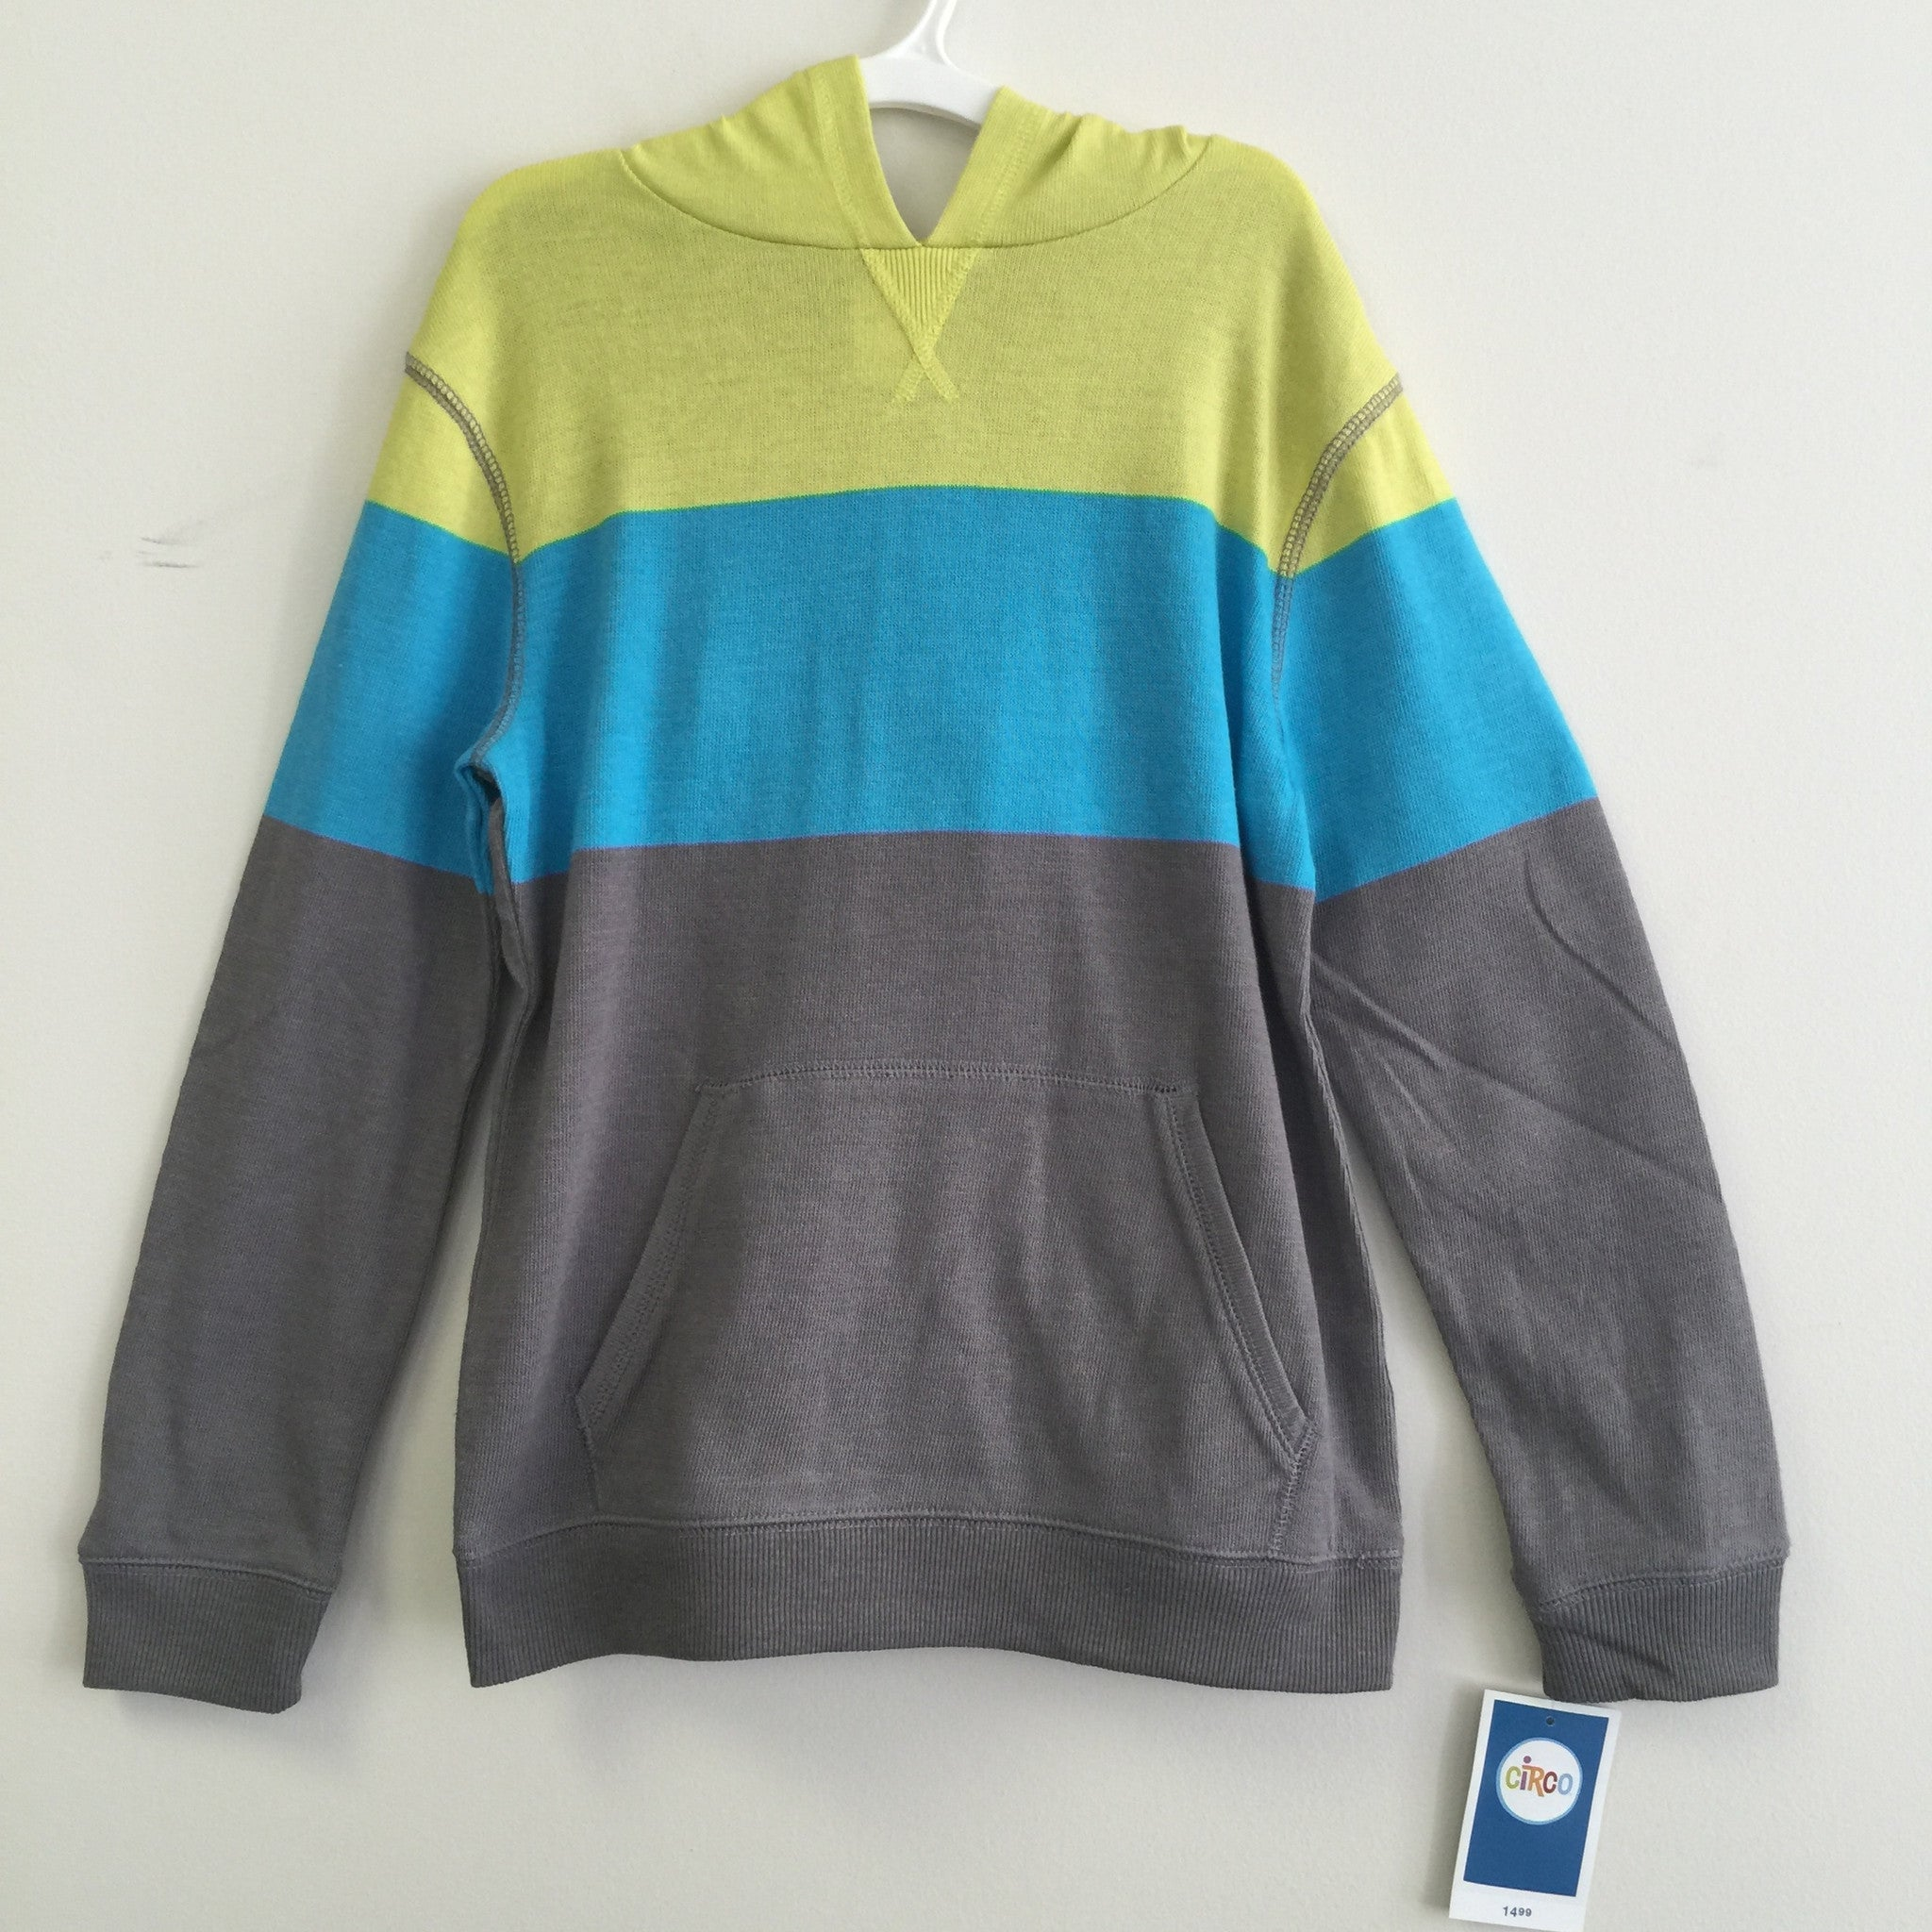 NEW, Circo Boy's Knit Color Block Hoodie Pullover Sweatshirt Yellow Green/Blue - LiquidationOutlet.ca